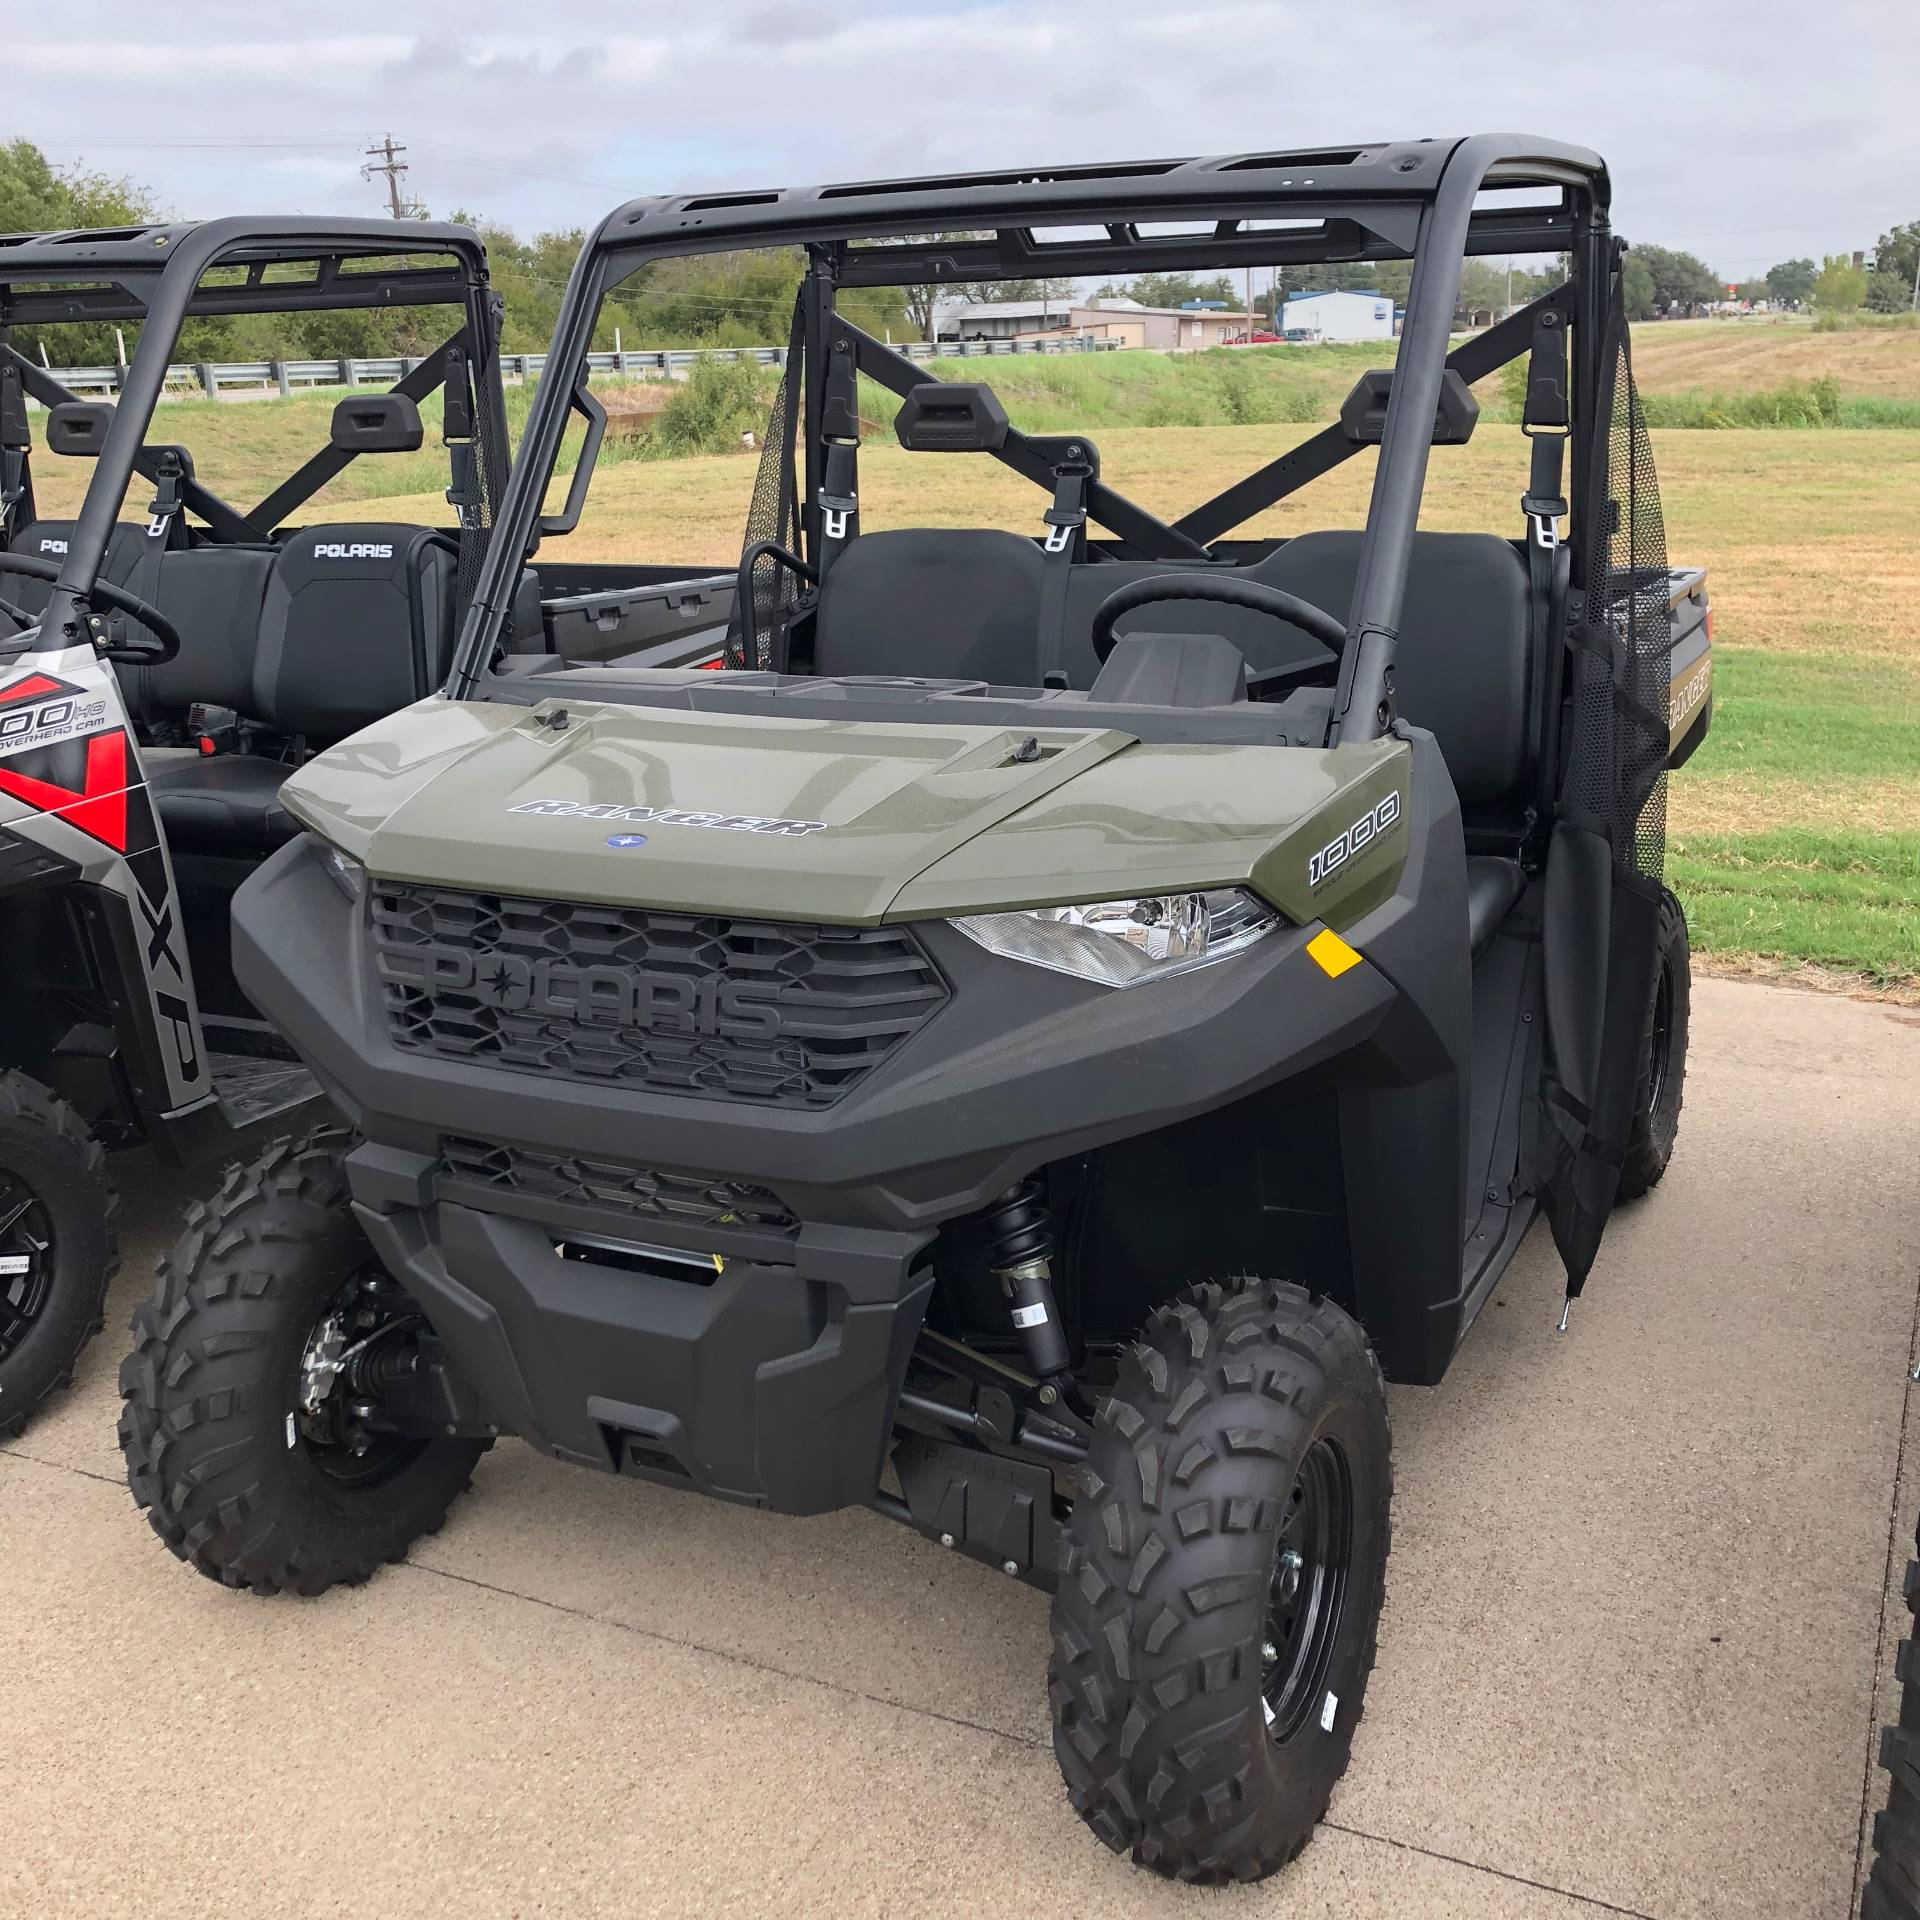 2020 Polaris Ranger 1000 in Whitney, Texas - Photo 1